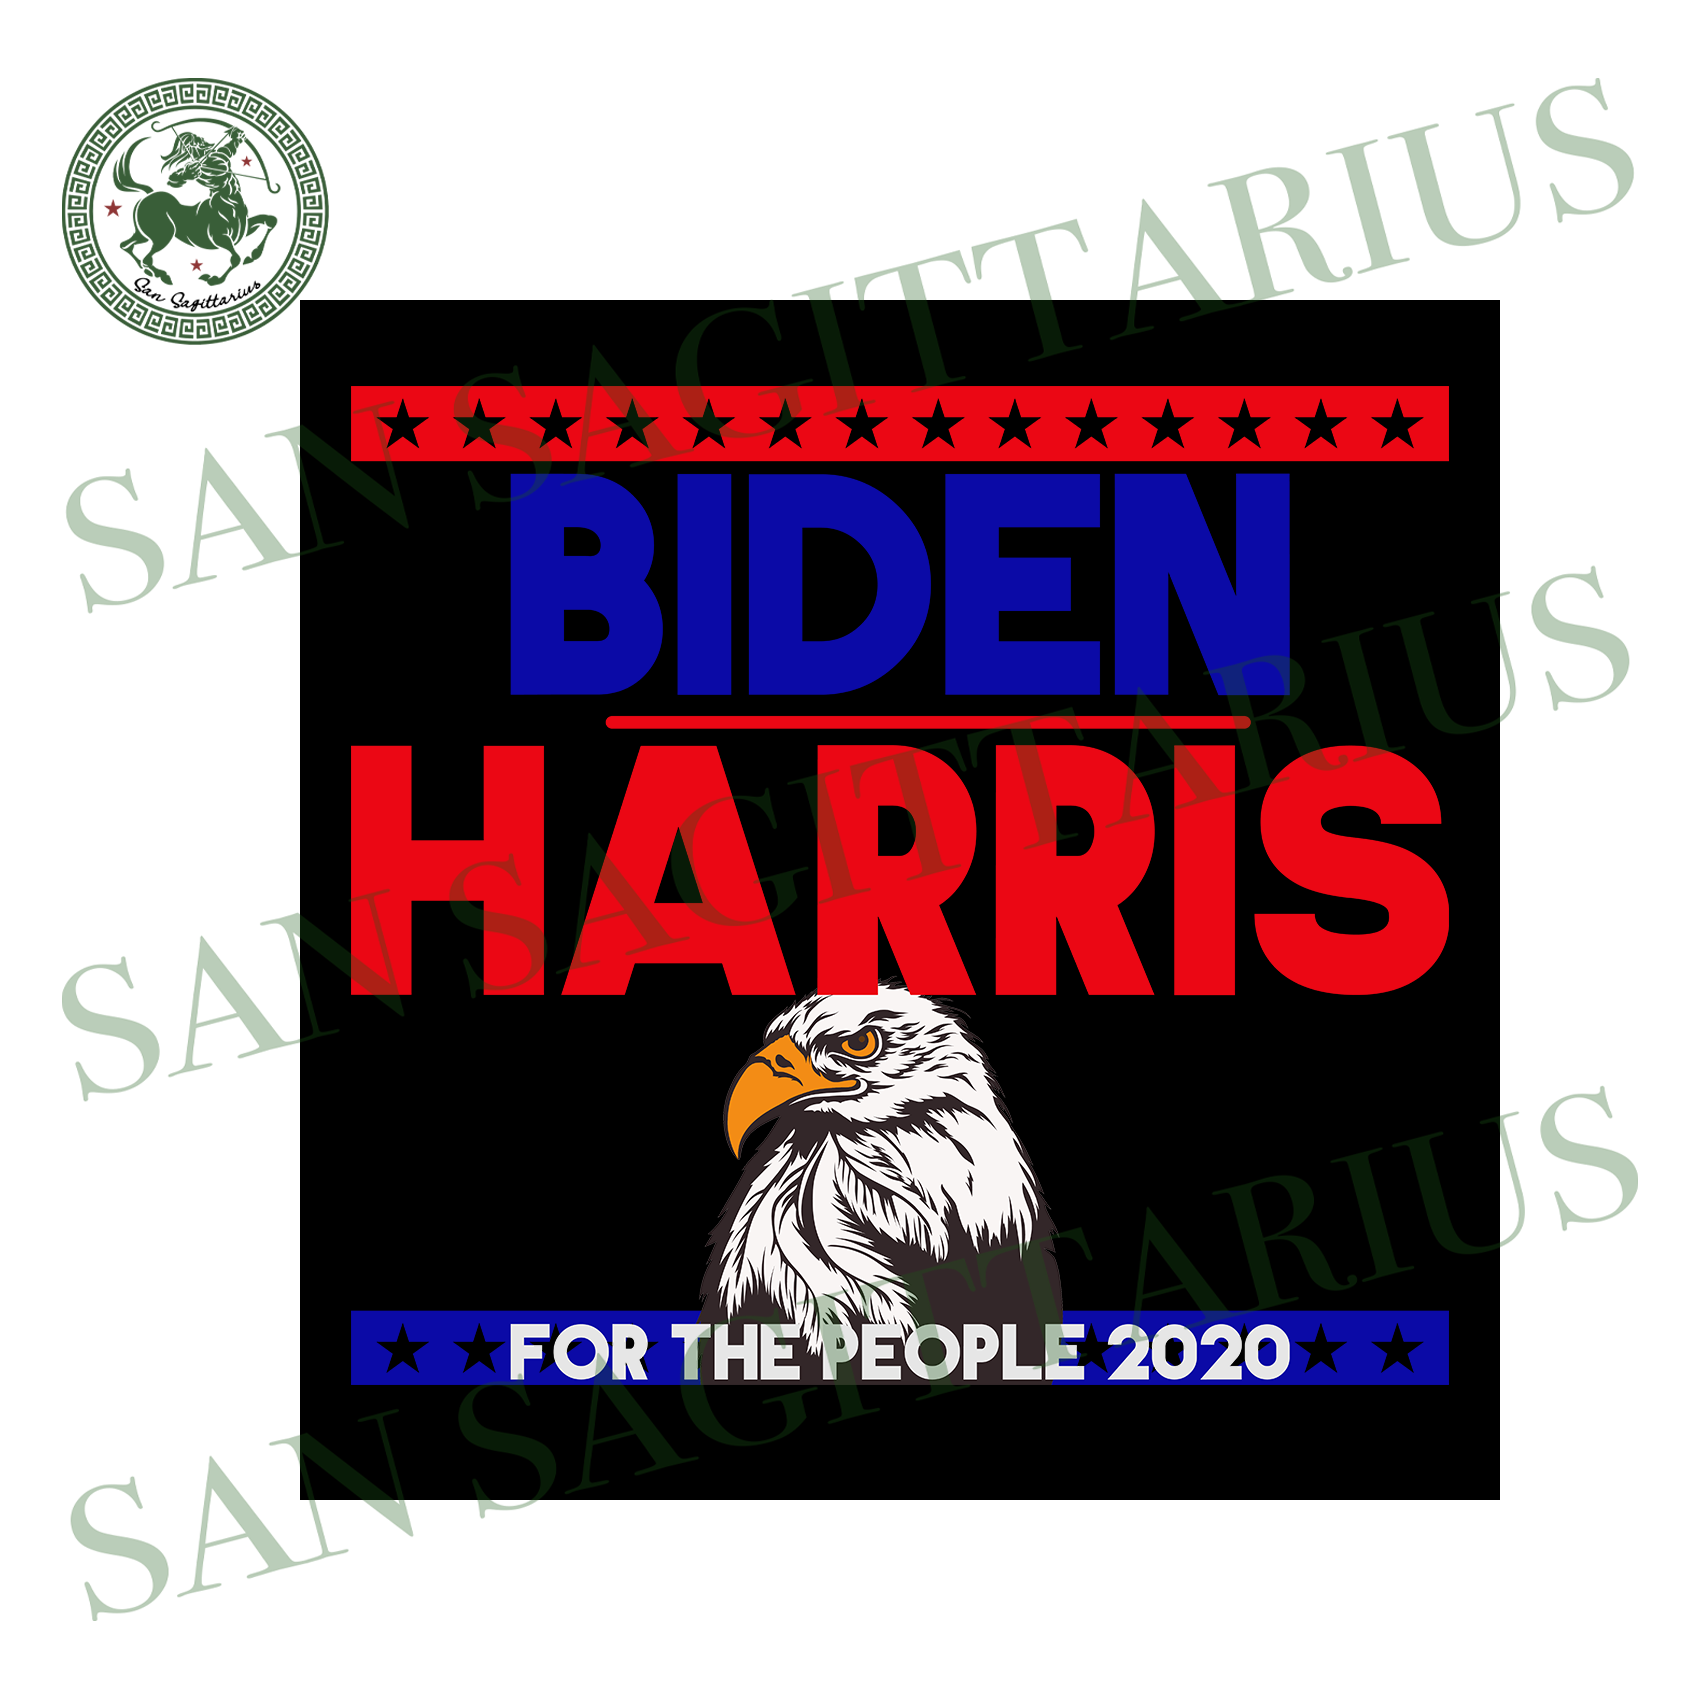 Biden harris for the people 2020 svg,svg,biden 2020 svg,harris 2020 svg,political shirt svg,anti trump 2020 svg,biden for president svg,svg cricut, silhouette svg files, cricut svg, silhouett